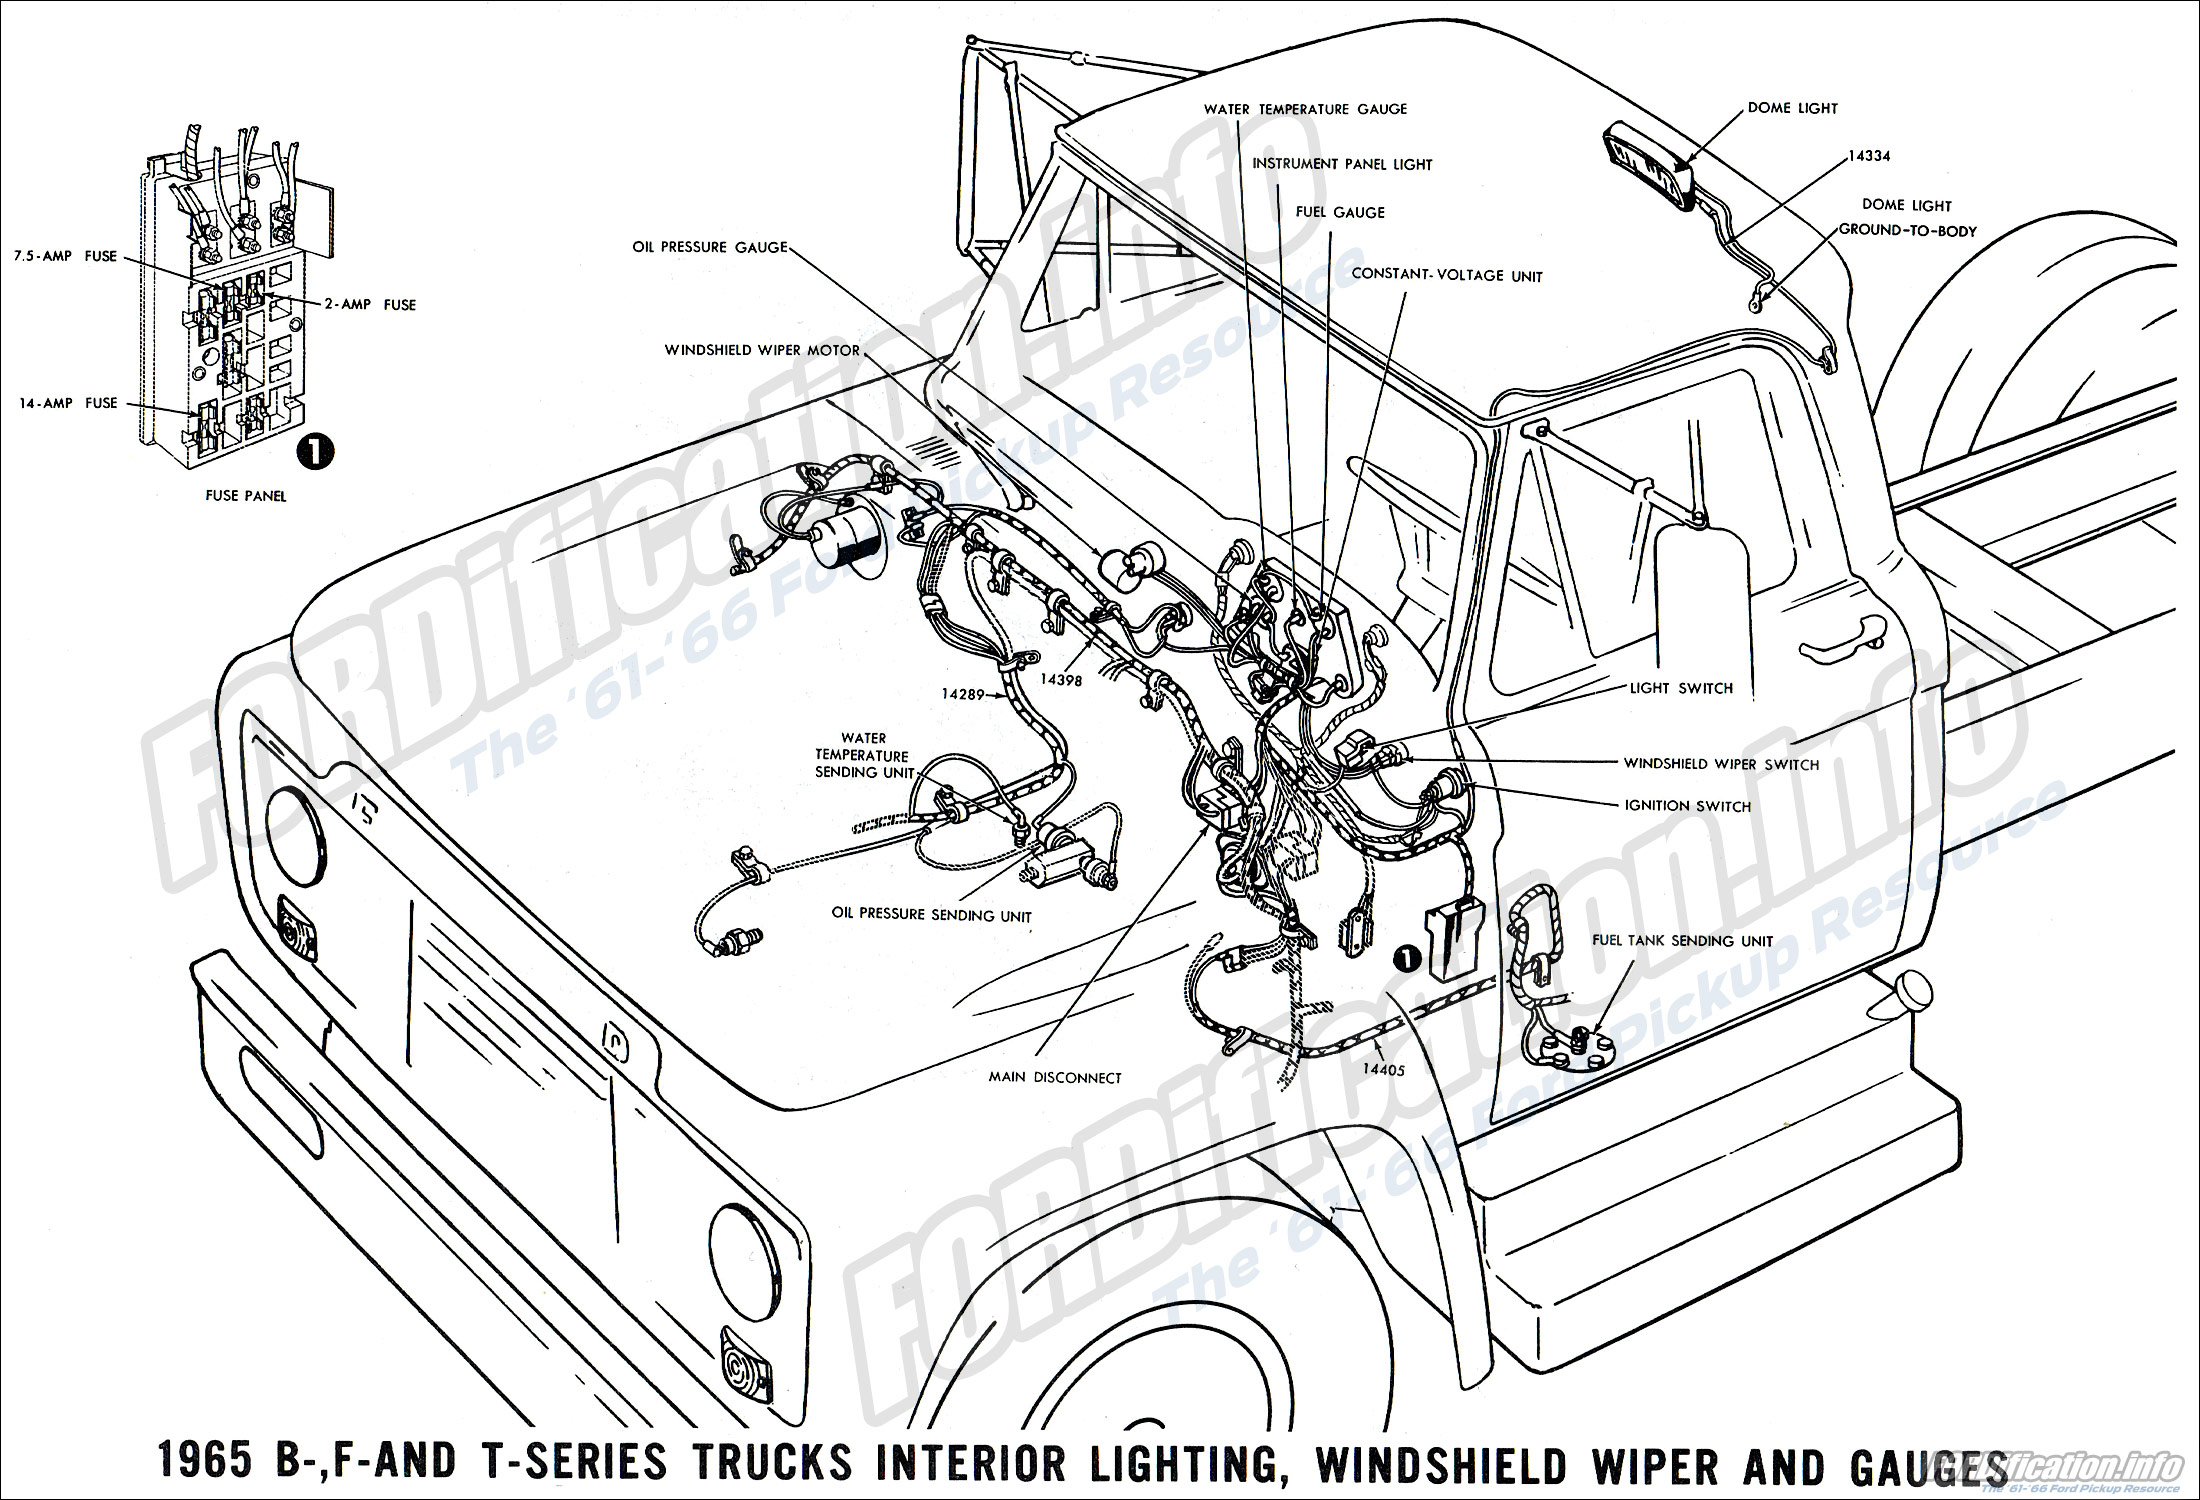 d17a engine diagram honda cl72 wiring diagram wire diagram for radio Honda L Engine  B18B Engine Diagram Honda Civic Honda B Engine